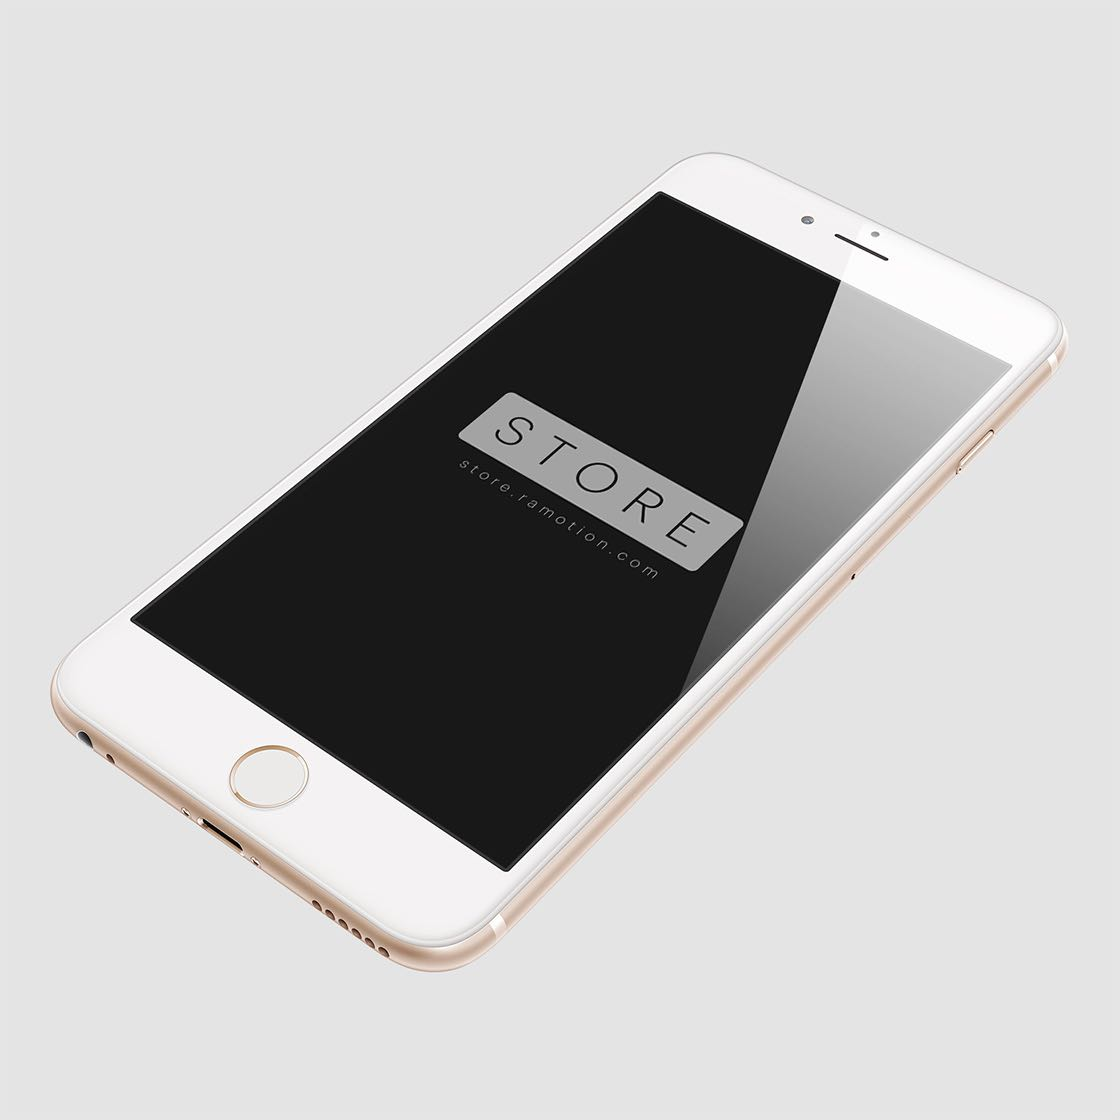 perspective gold iphone 6 plus mockup